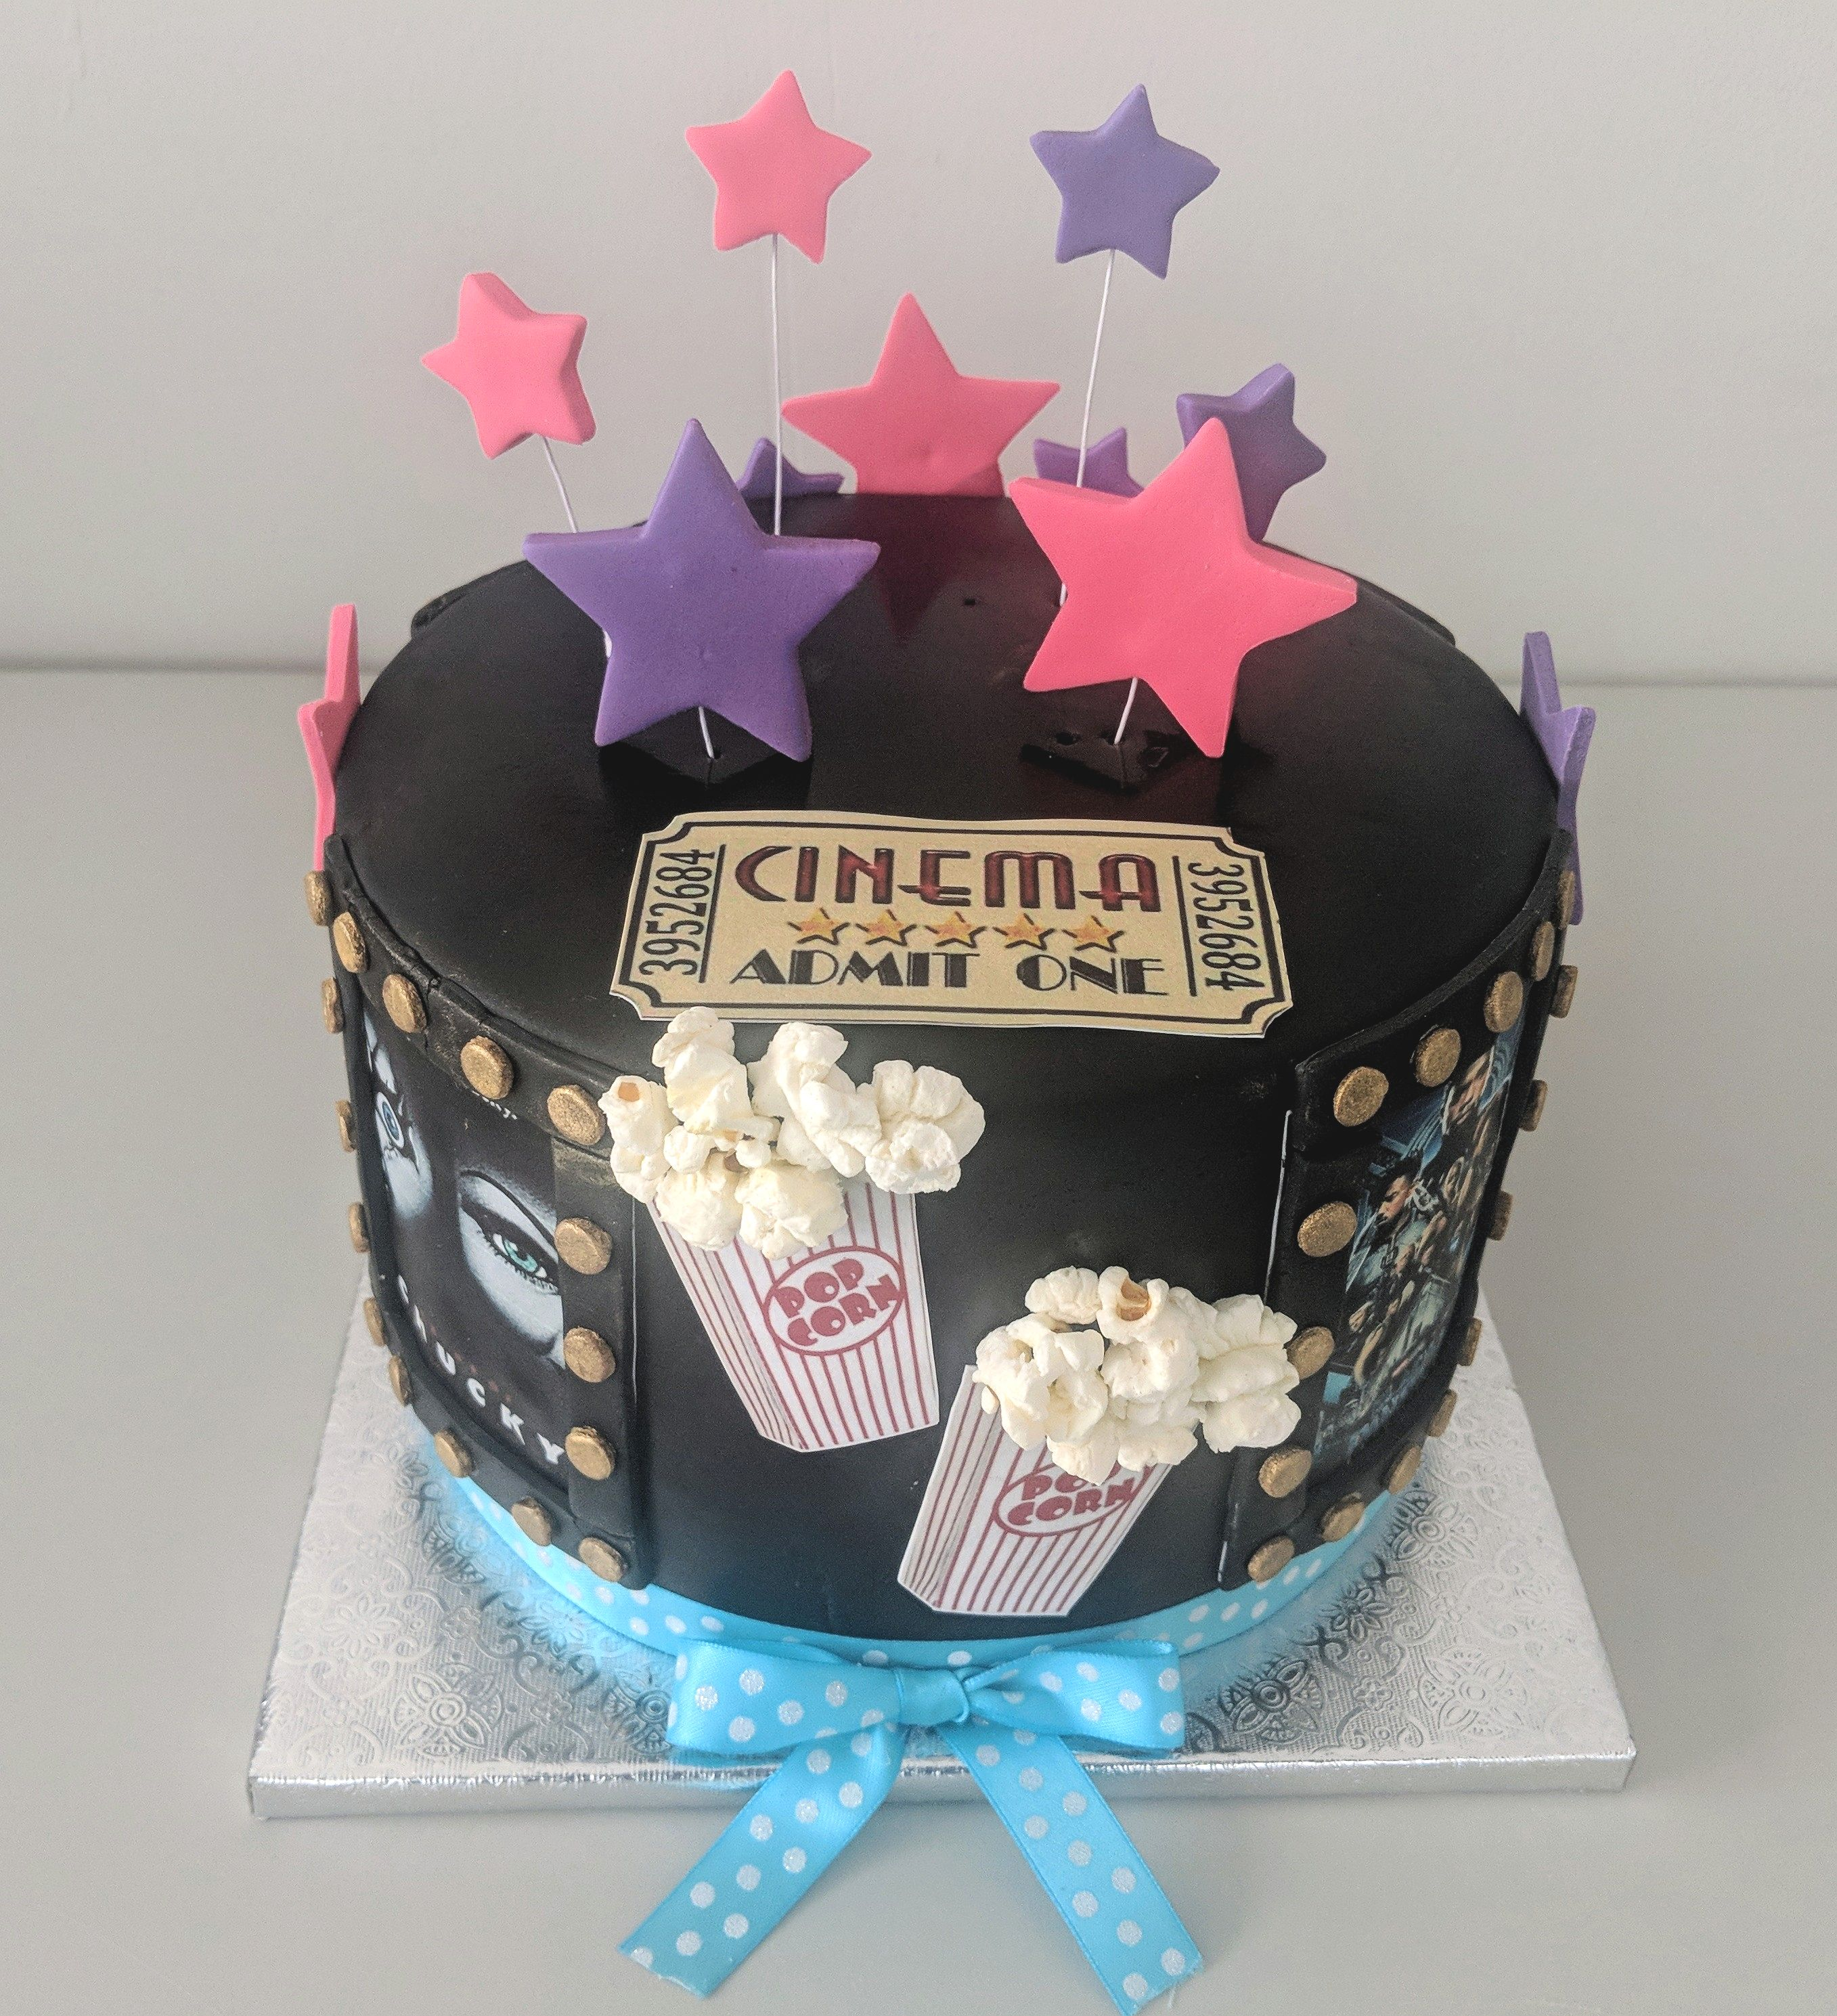 Cinema Birthday Cake (front)